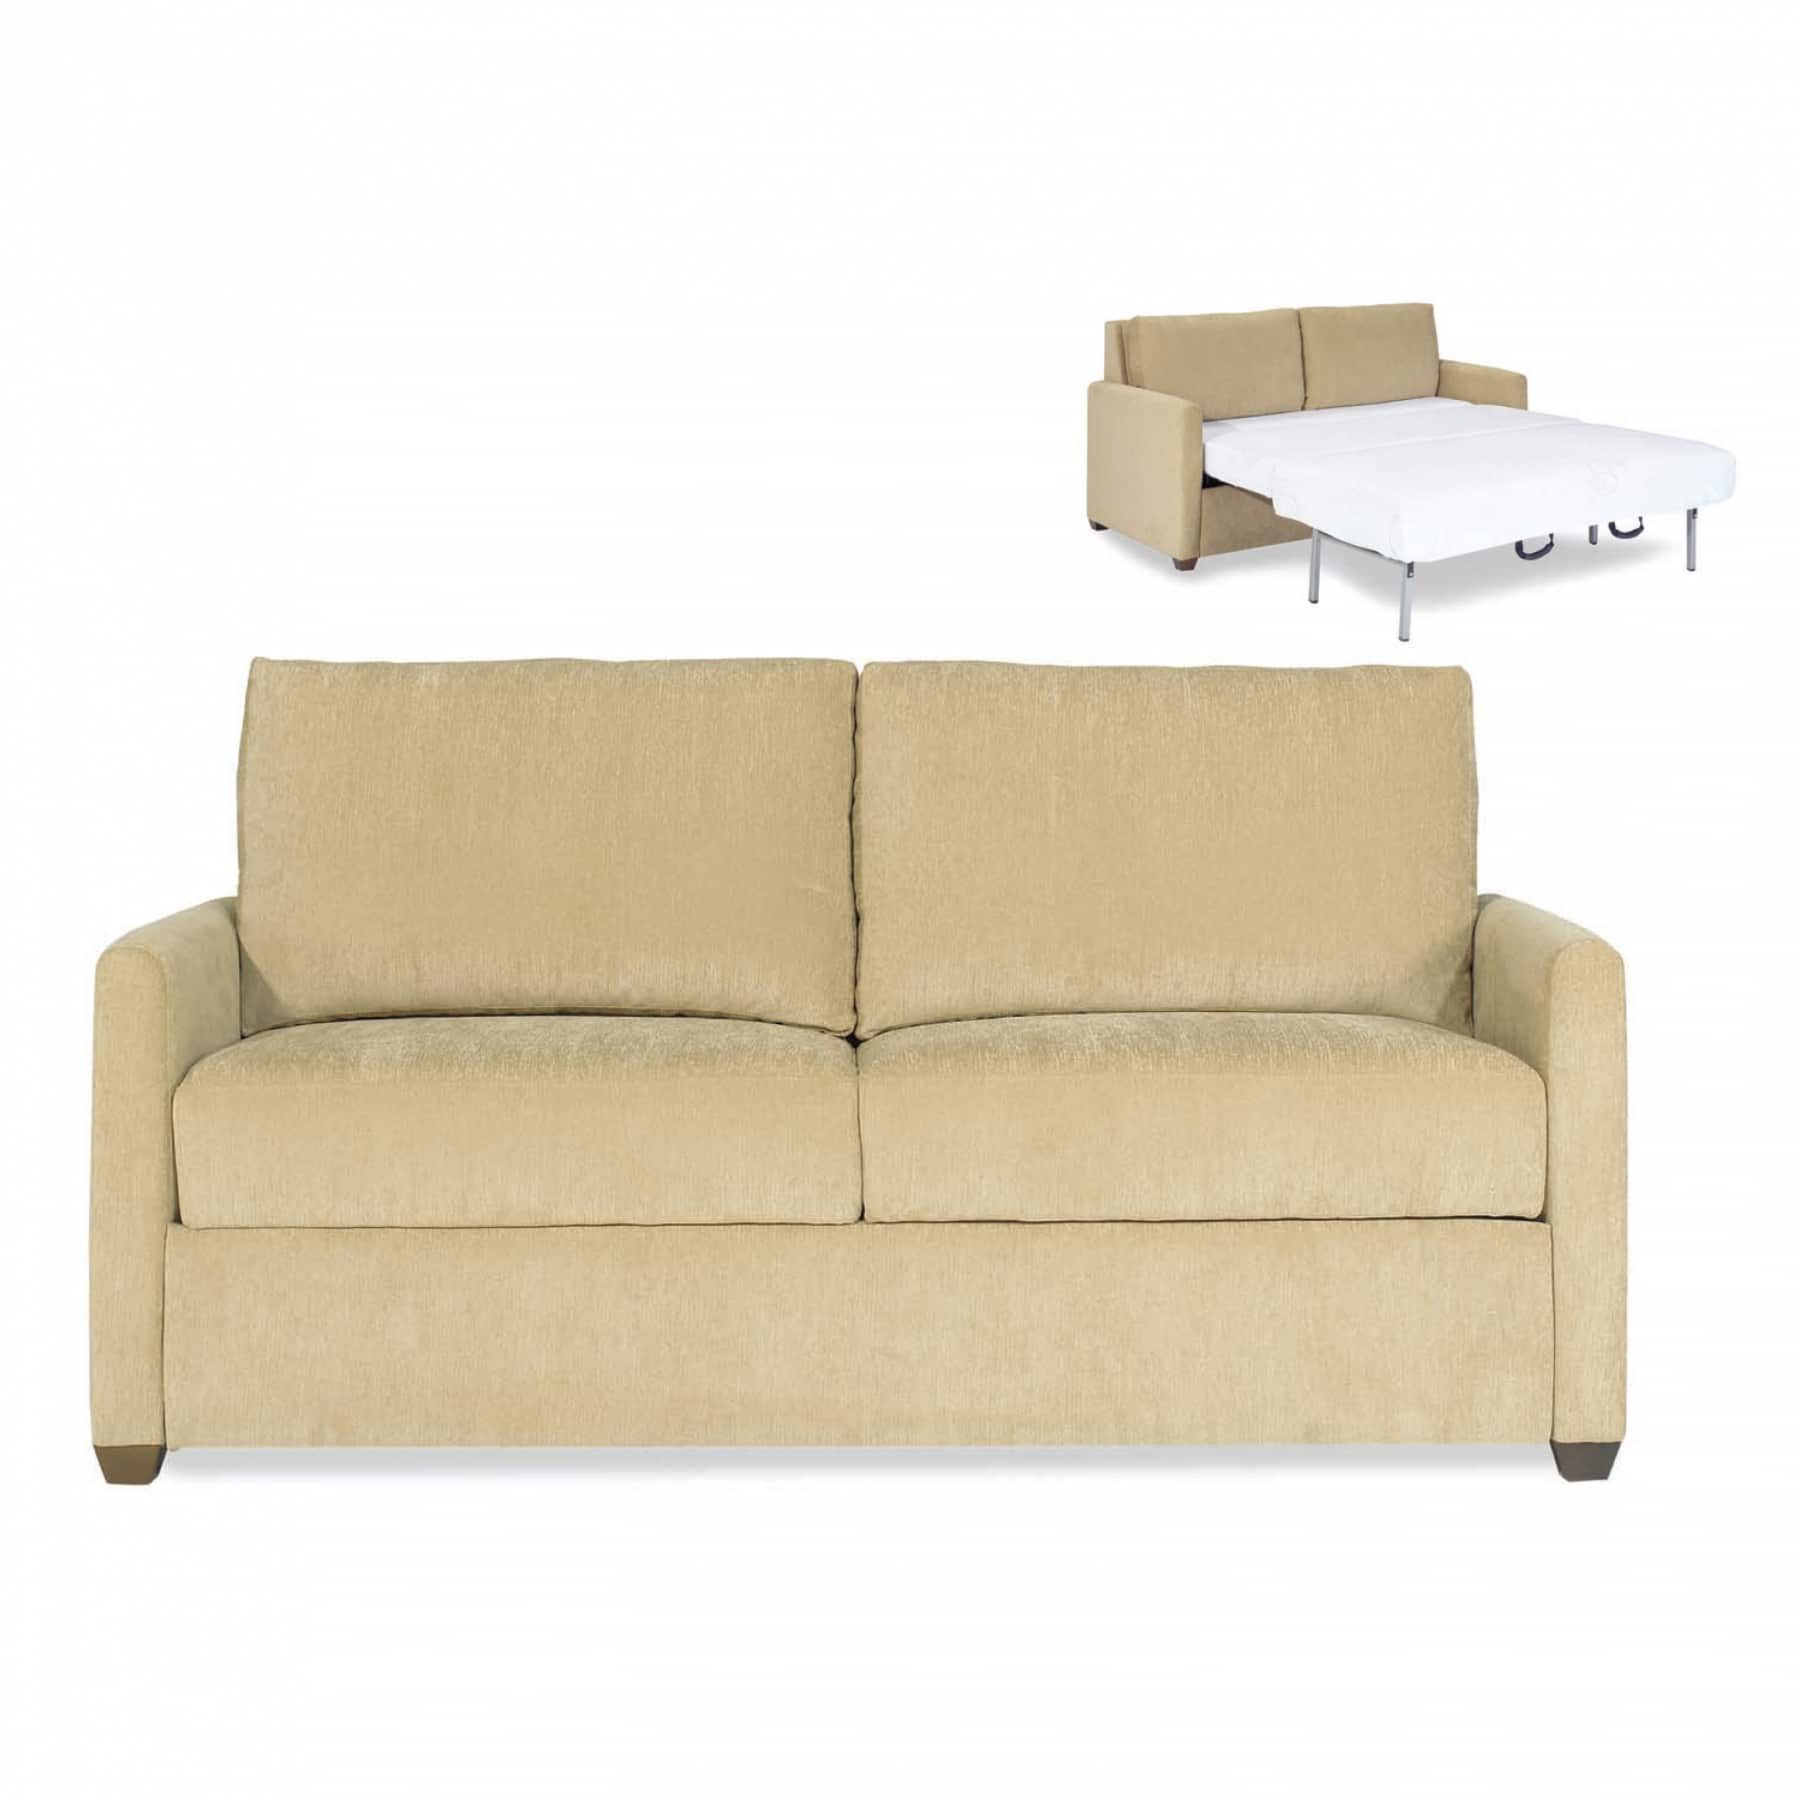 Somerset III Sofa Queen Sleeper By Lazar